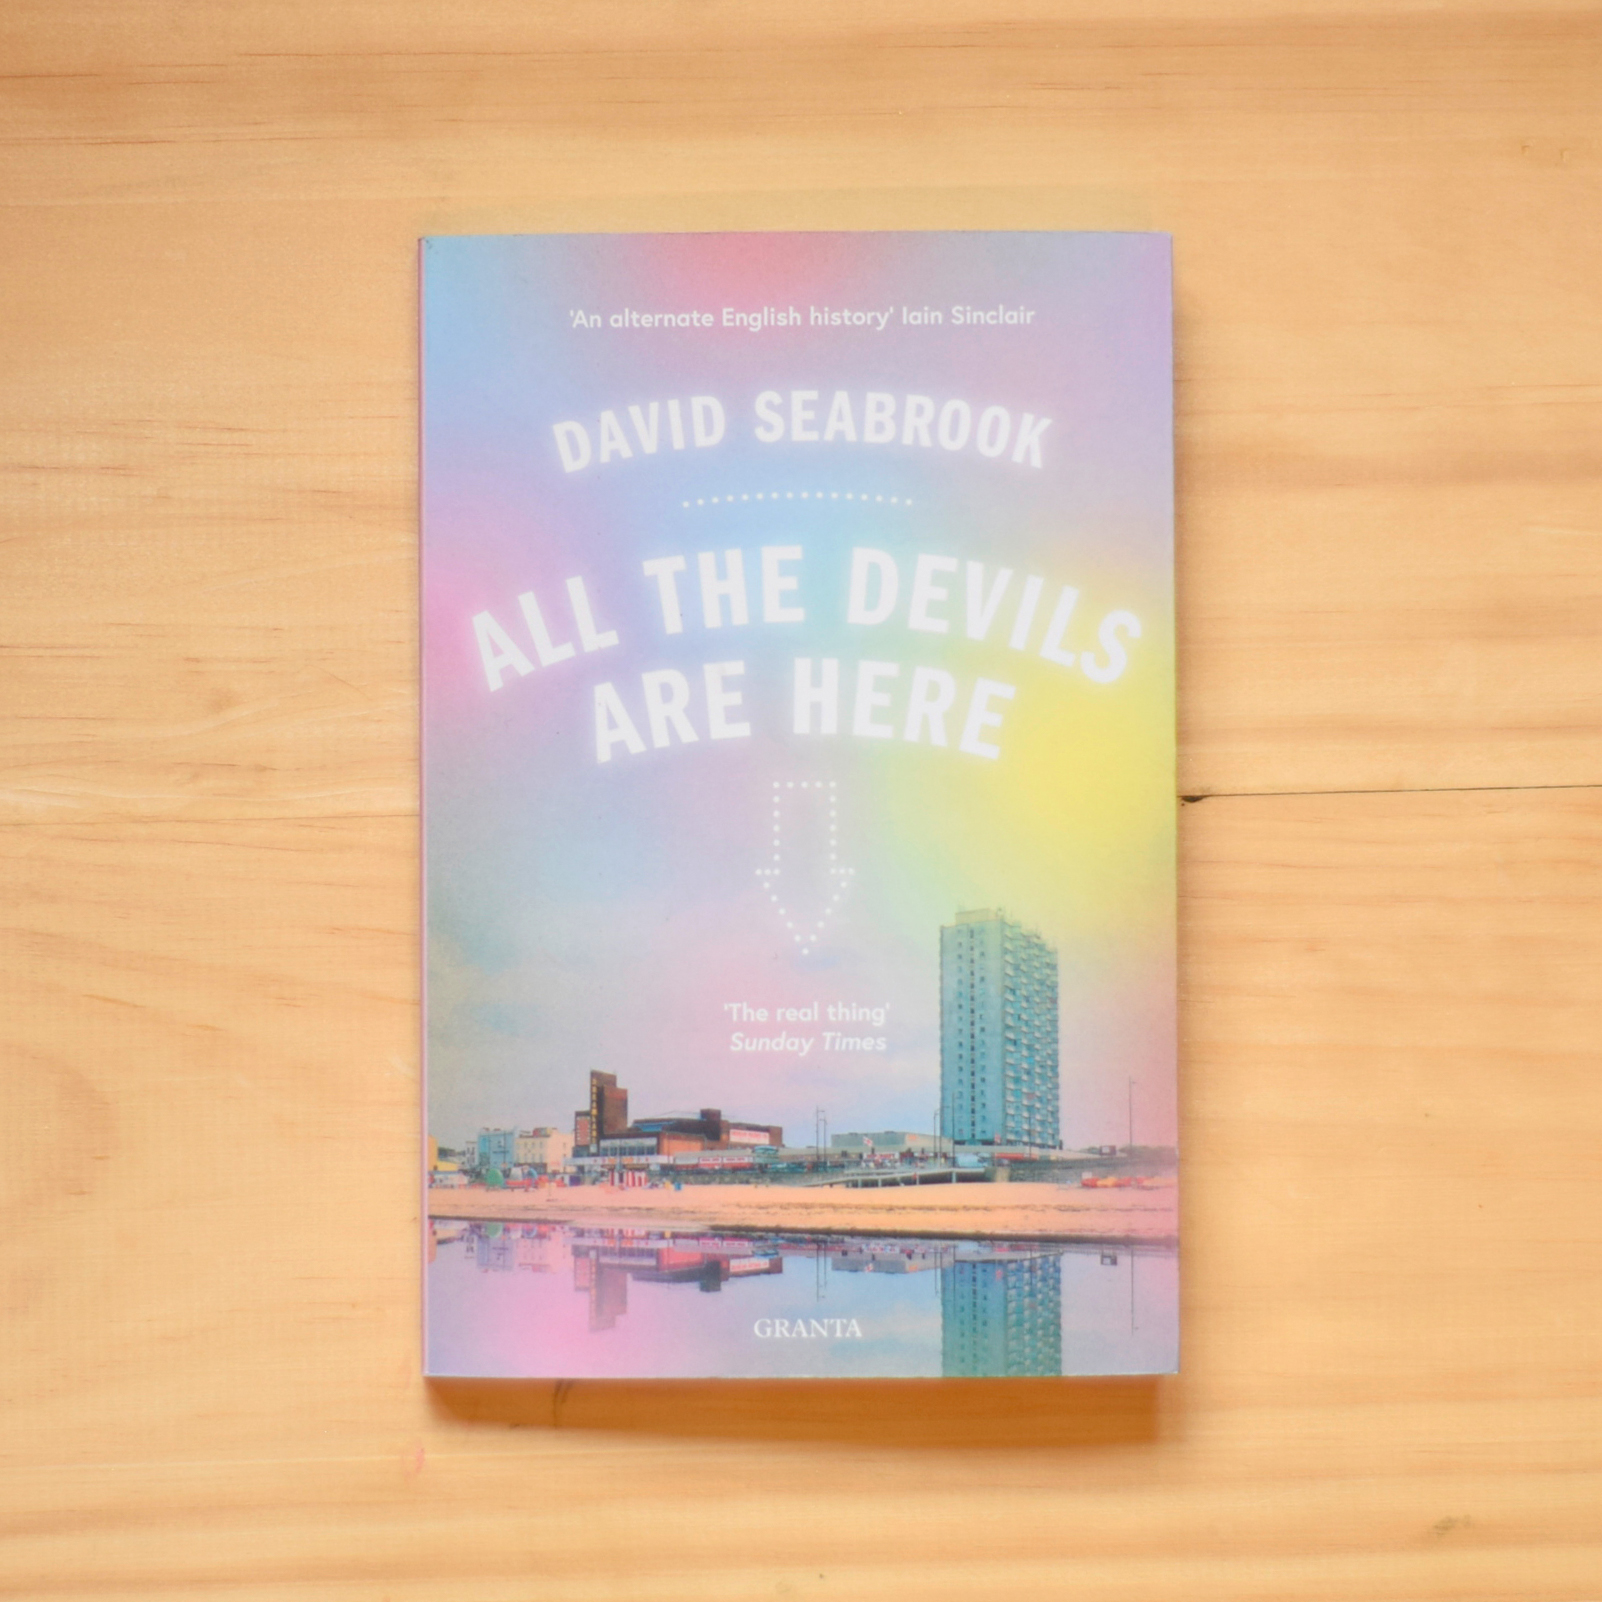 #3: All the Devils Are Here - By David SeabrookDavid Seabrook writes about Margate and its neighbouring towns, of its history and its various phases of popularity or infamy, as literary figures pass through like ghosts: Eliot, Dickens, Buchan, Dudd, to name a few. This book was published in 2002 but it has a quality of real timelessness, it could well have been written in the 18th or 19th century, or perhaps in fifty years from now. It's gritty, it's odd, and I absolutely loved it.